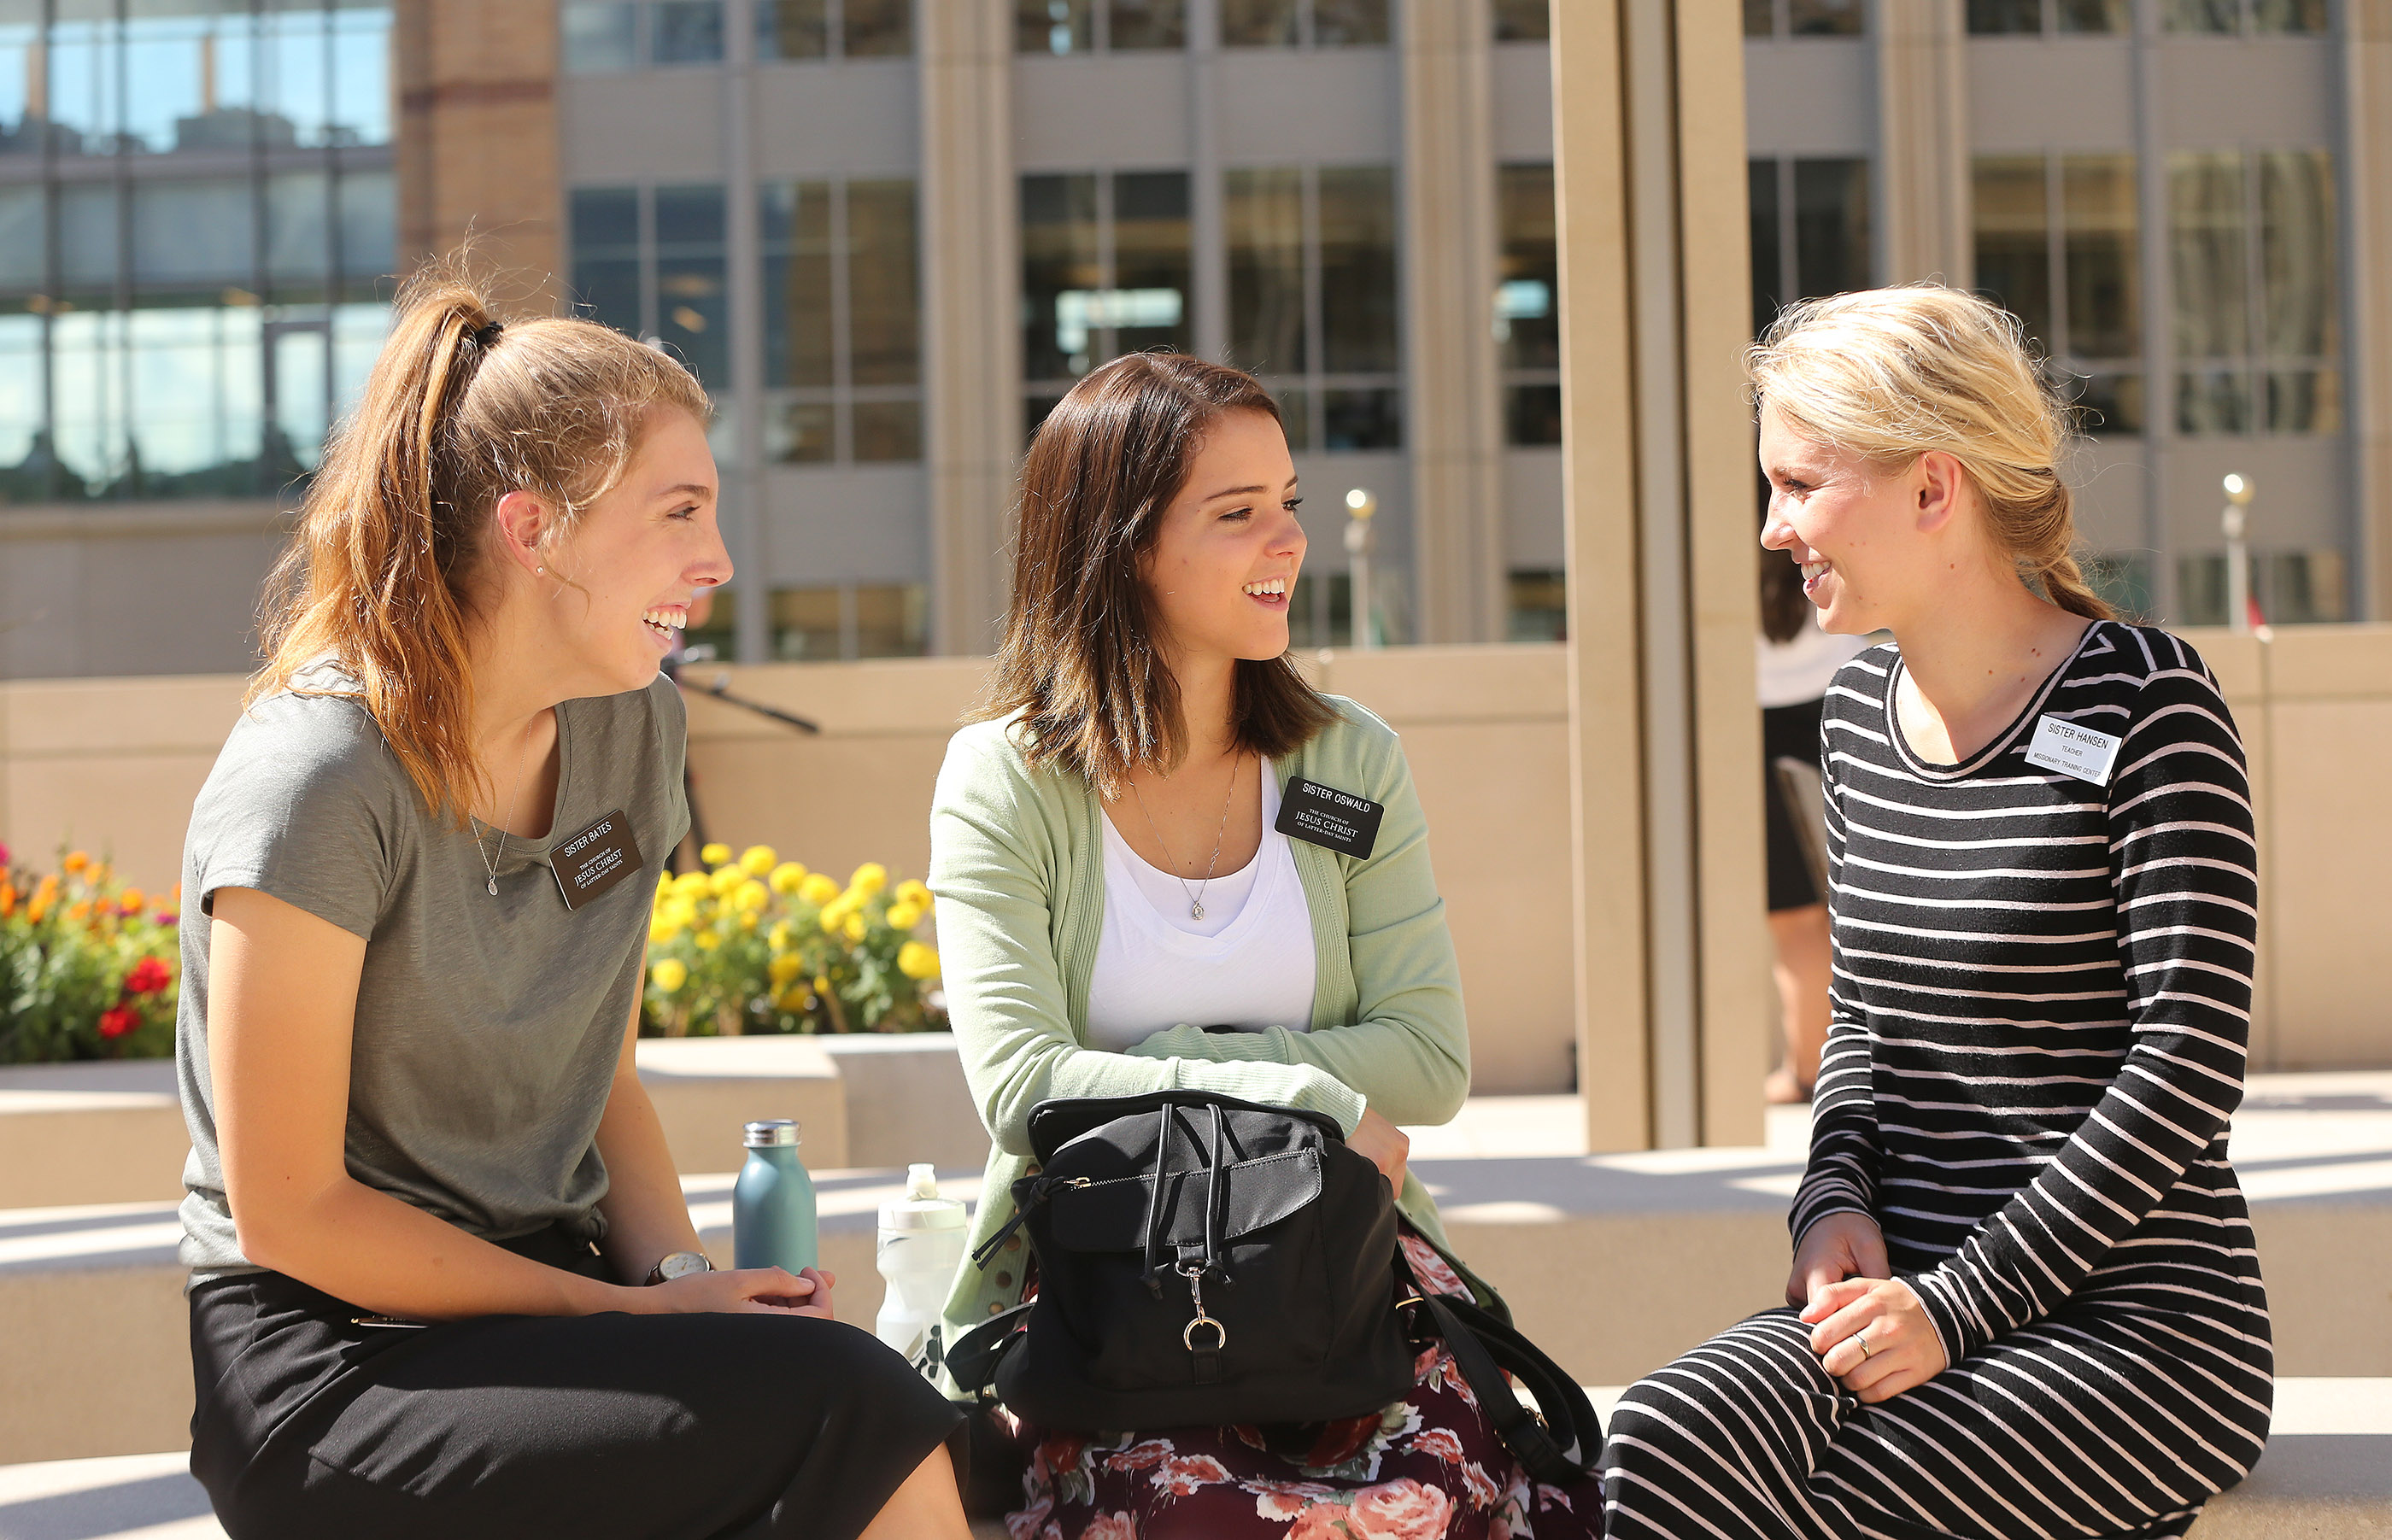 Sisters Hannah Bates and Abigail Oswald talk with their teacher Lexi Hansen in the open spaces between the new T3 and T4 training buildings at the Provo Missionary Training Center in Provo on Wednesday, July 26, 2017.